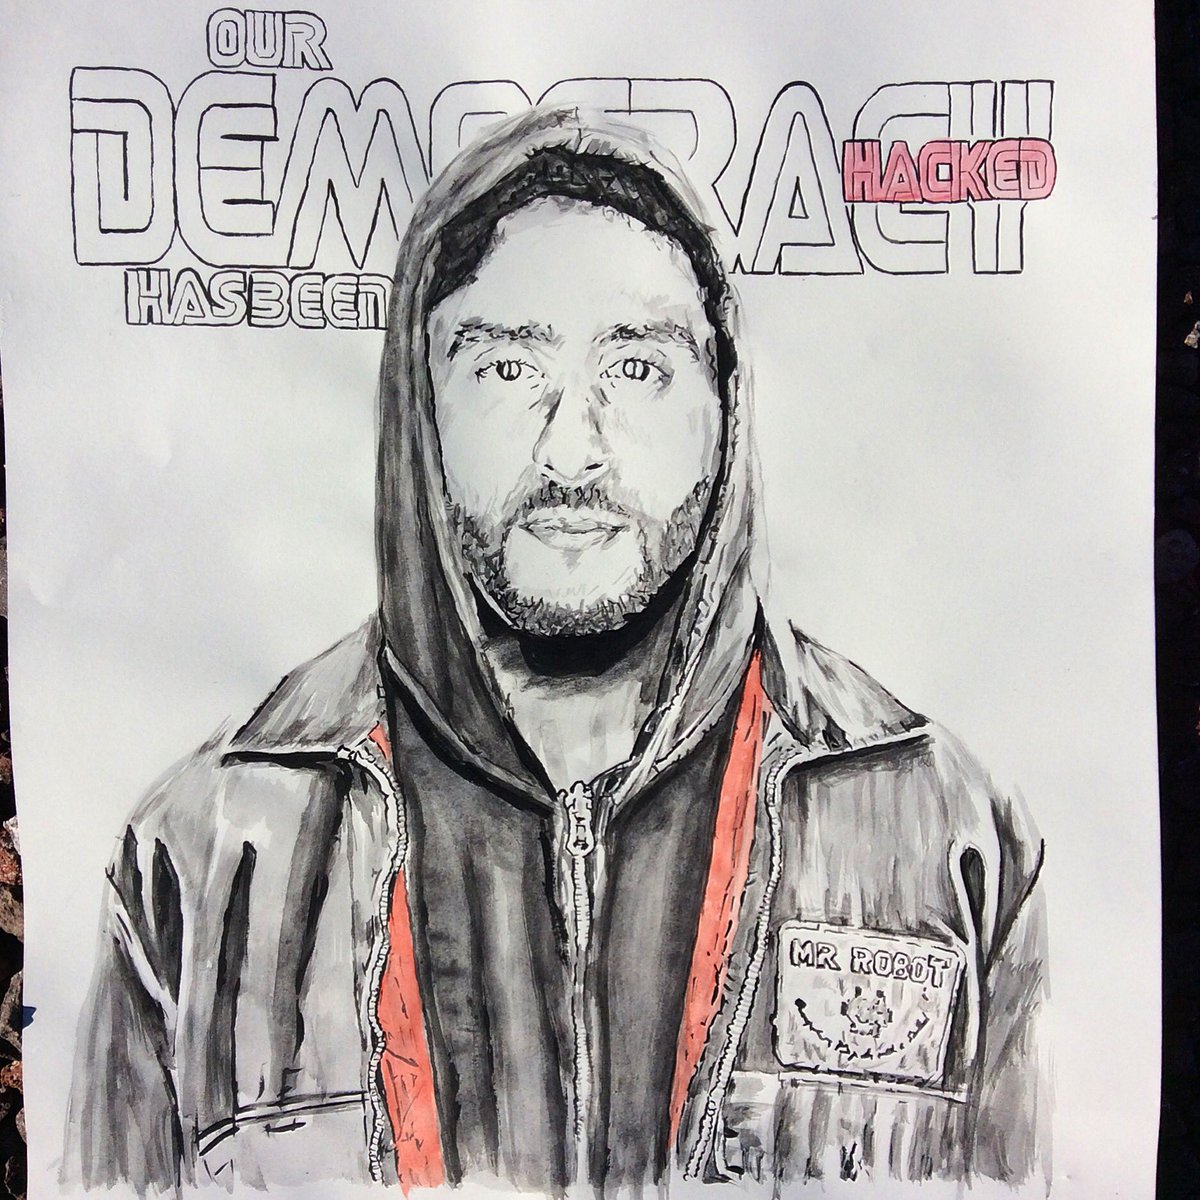 403826192a0 ... and controversy over Nike while our democracy has been hacked  mrrobot   elliot  haxor  democracy  ourdemocracyhasbeenhacked  hoodie   colinkaepernick ...